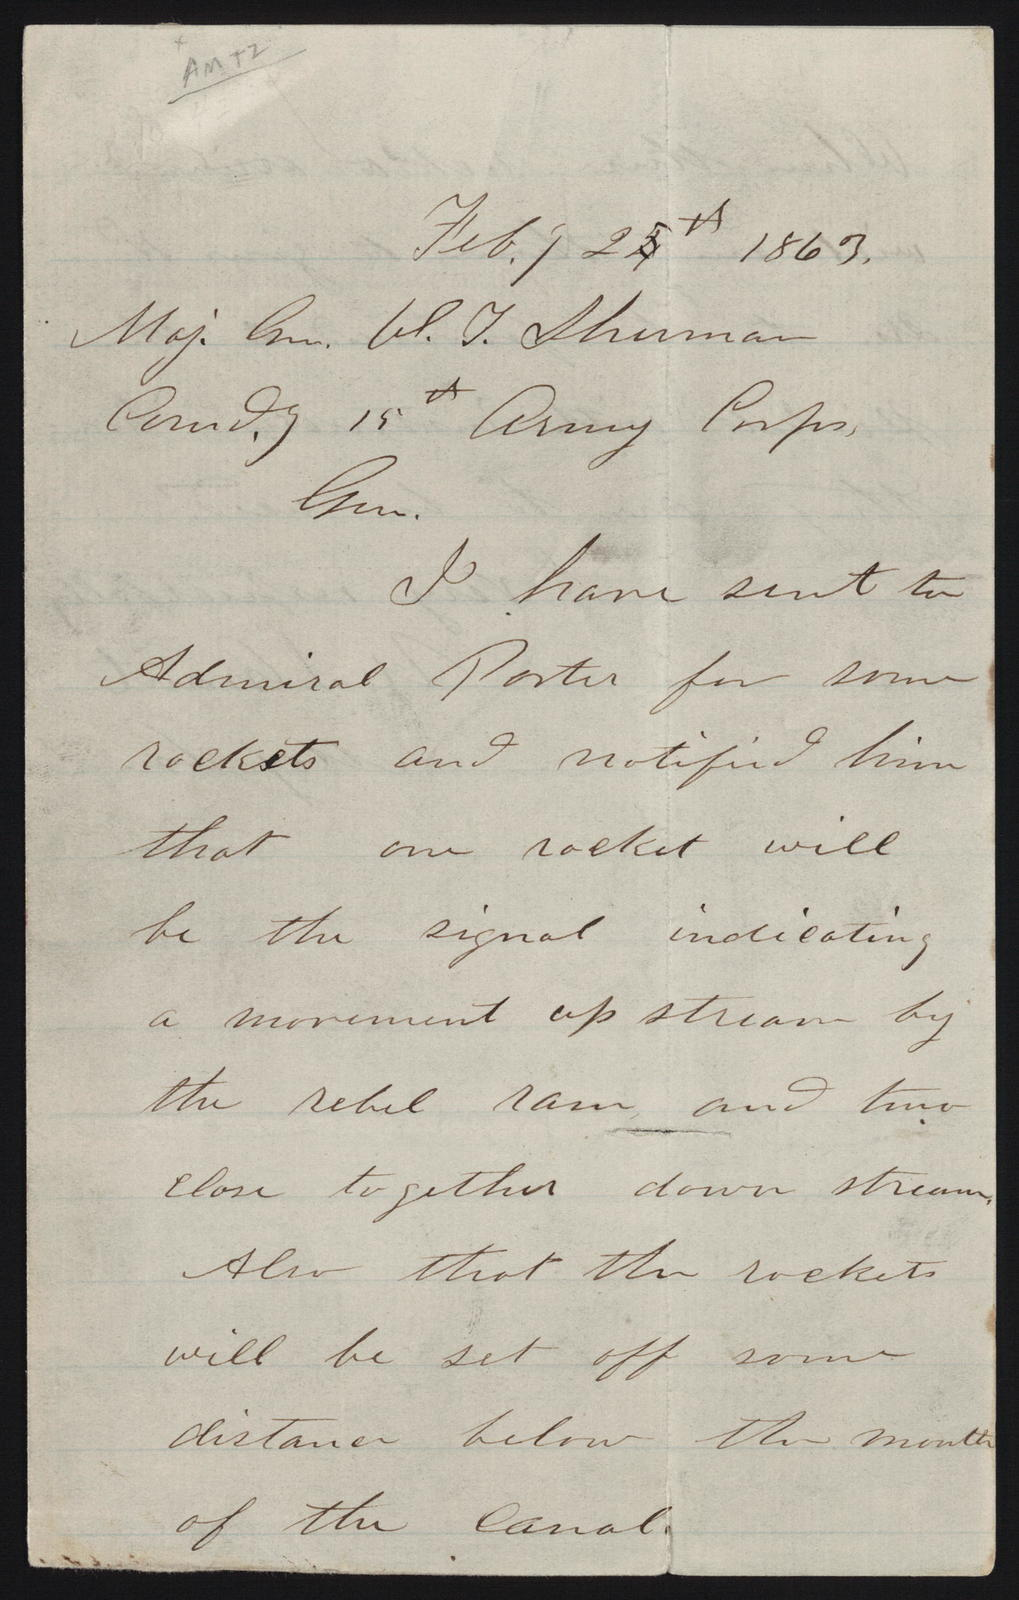 Letter to William Tecumseh Sherman from Ulysses Simpson Grant, February 25, 1863.